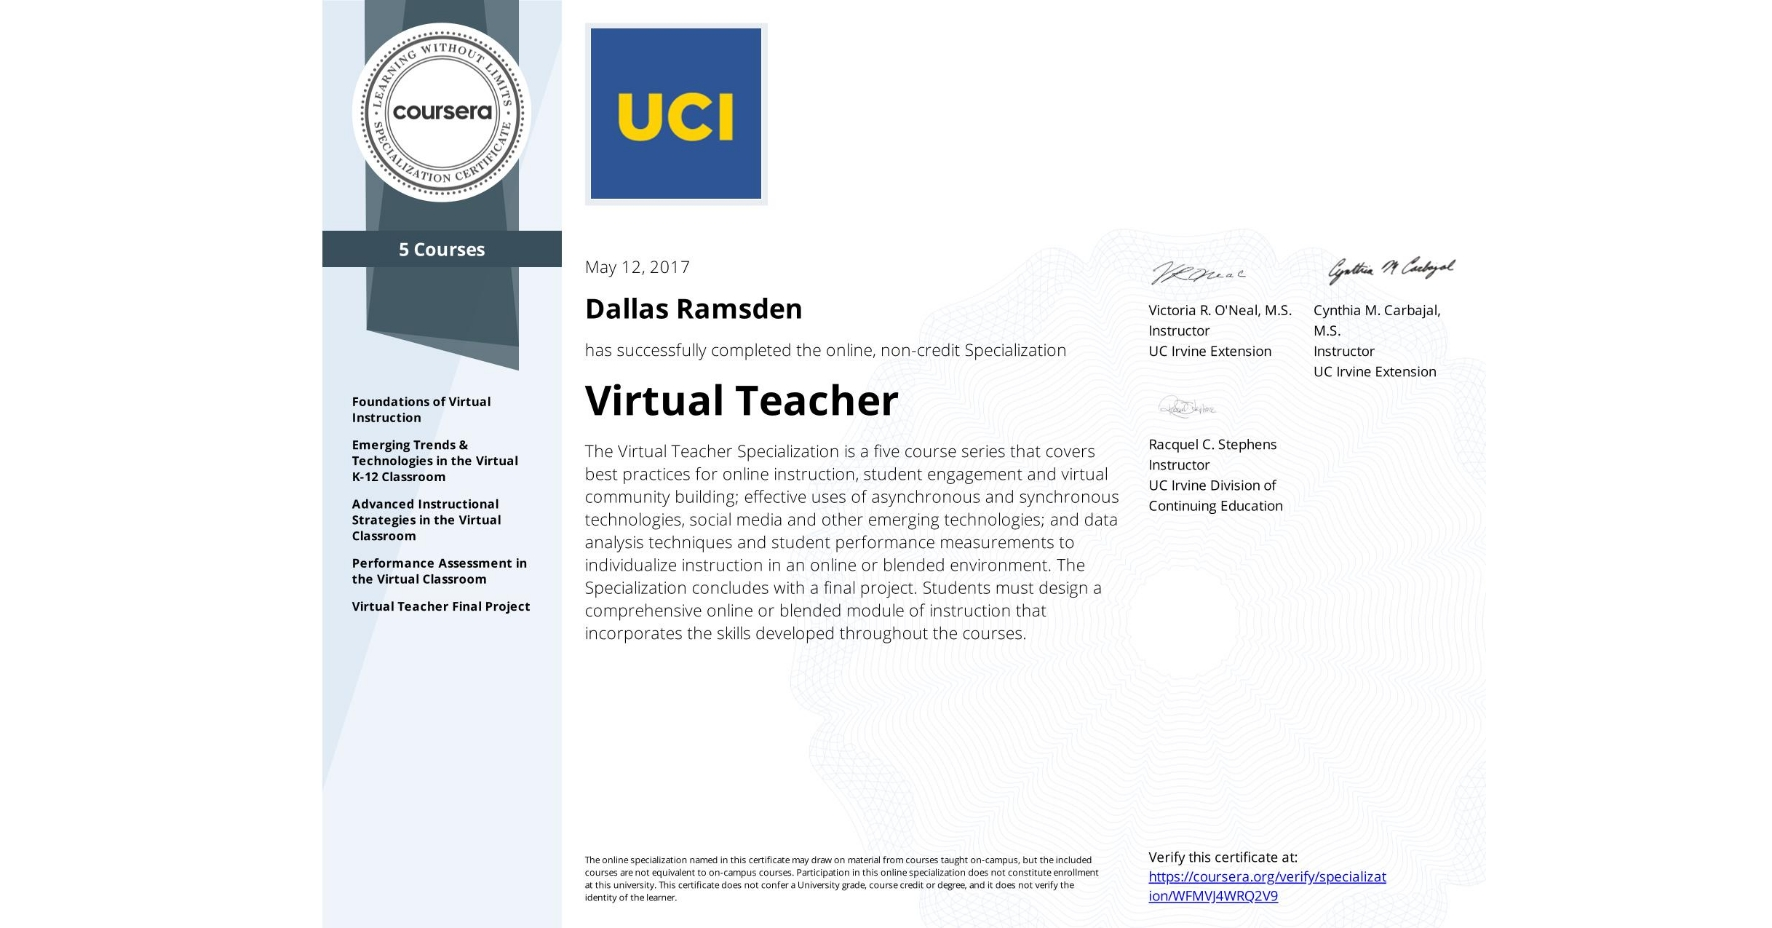 View certificate for Dallas Ramsden, Virtual Teacher, offered through Coursera. The Virtual Teacher Specialization is a five course series that covers best practices for online instruction, student engagement and virtual community building; effective uses of asynchronous and synchronous technologies, social media and other emerging technologies; and data analysis techniques and student performance measurements to individualize instruction in an online or blended environment. The Specialization concludes with a final project. Students must design a comprehensive online or blended module of instruction that incorporates the skills developed throughout the courses.